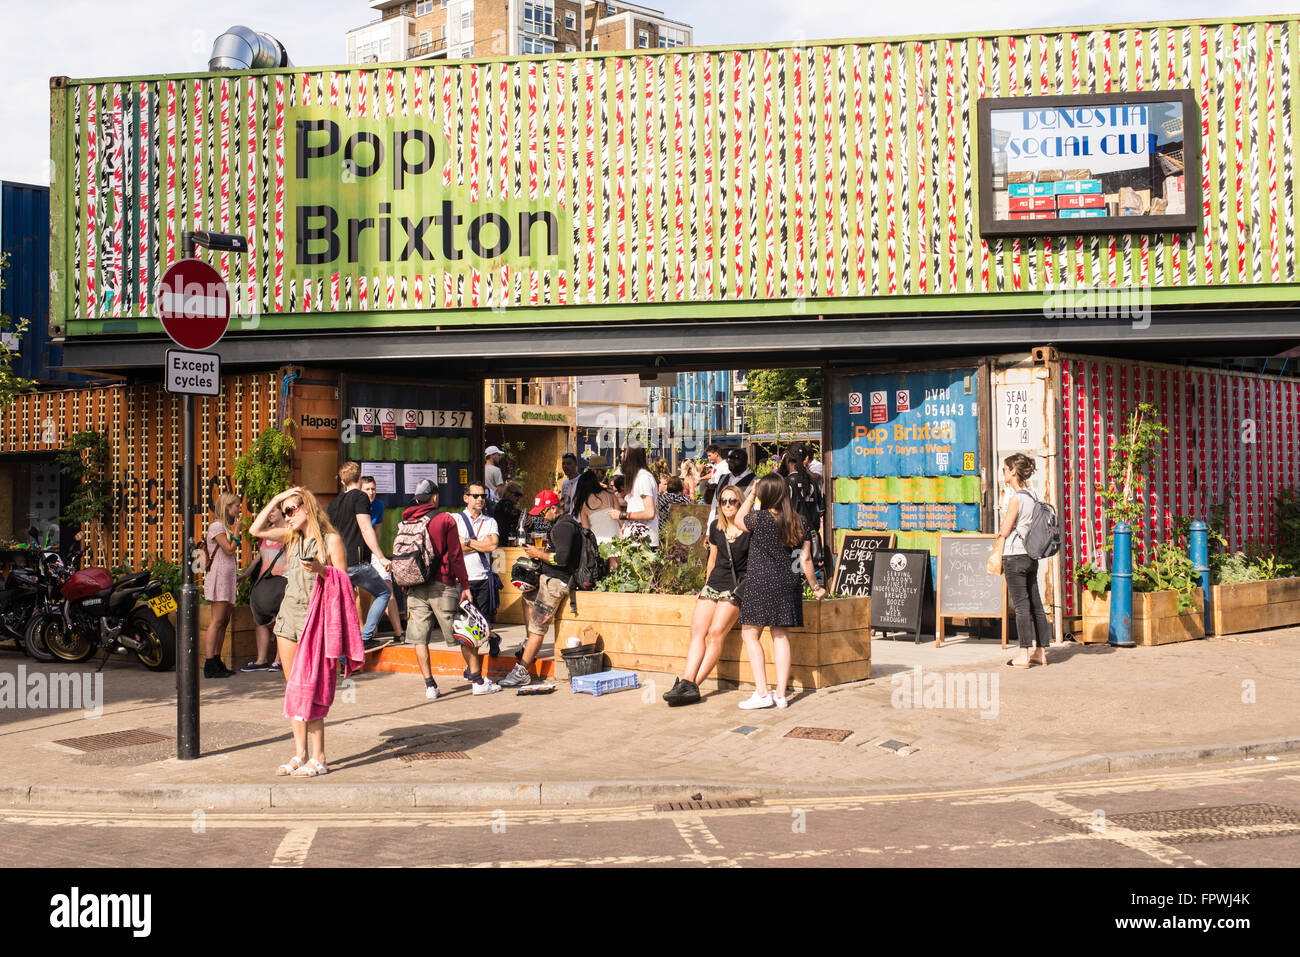 People enjoying the London summer in a new pop-up opened in Brixton called 'Pop Brixton'. - Stock Image